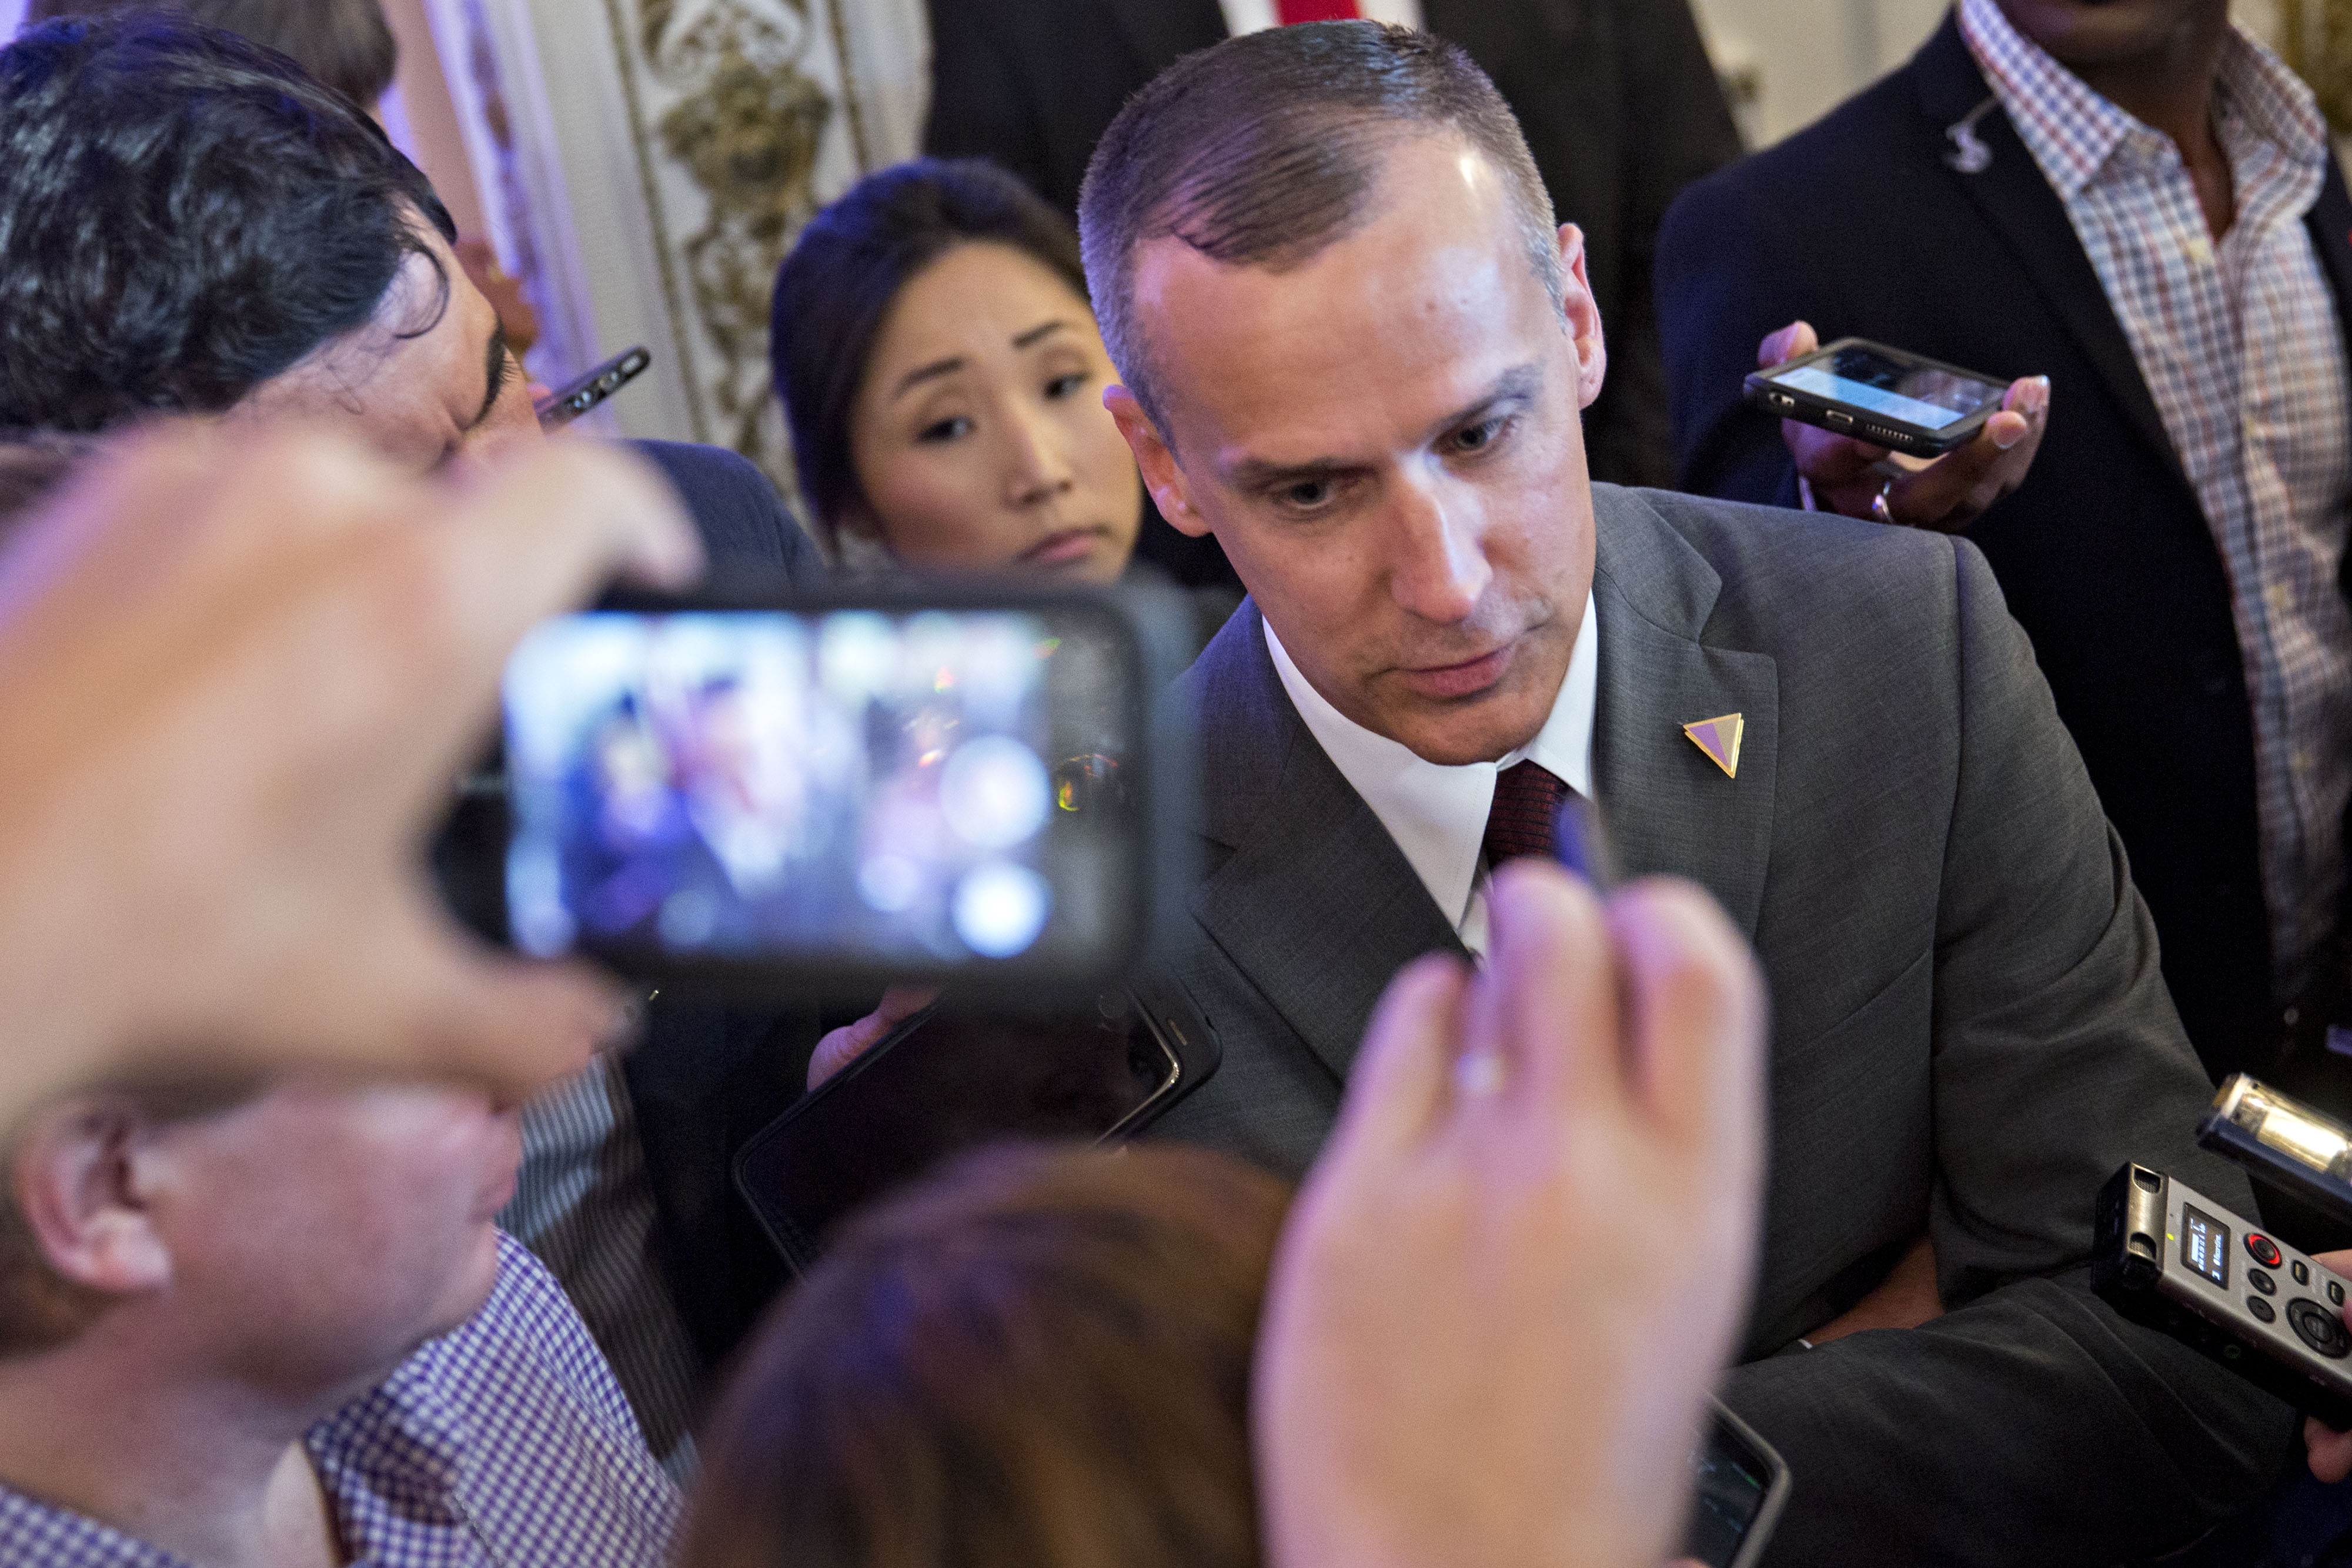 Corey Lewandowski, 42, had faced one misdemeanor count of battery as a result of the March 8 incident with reporter Michelle Fields. (Bloomberg)